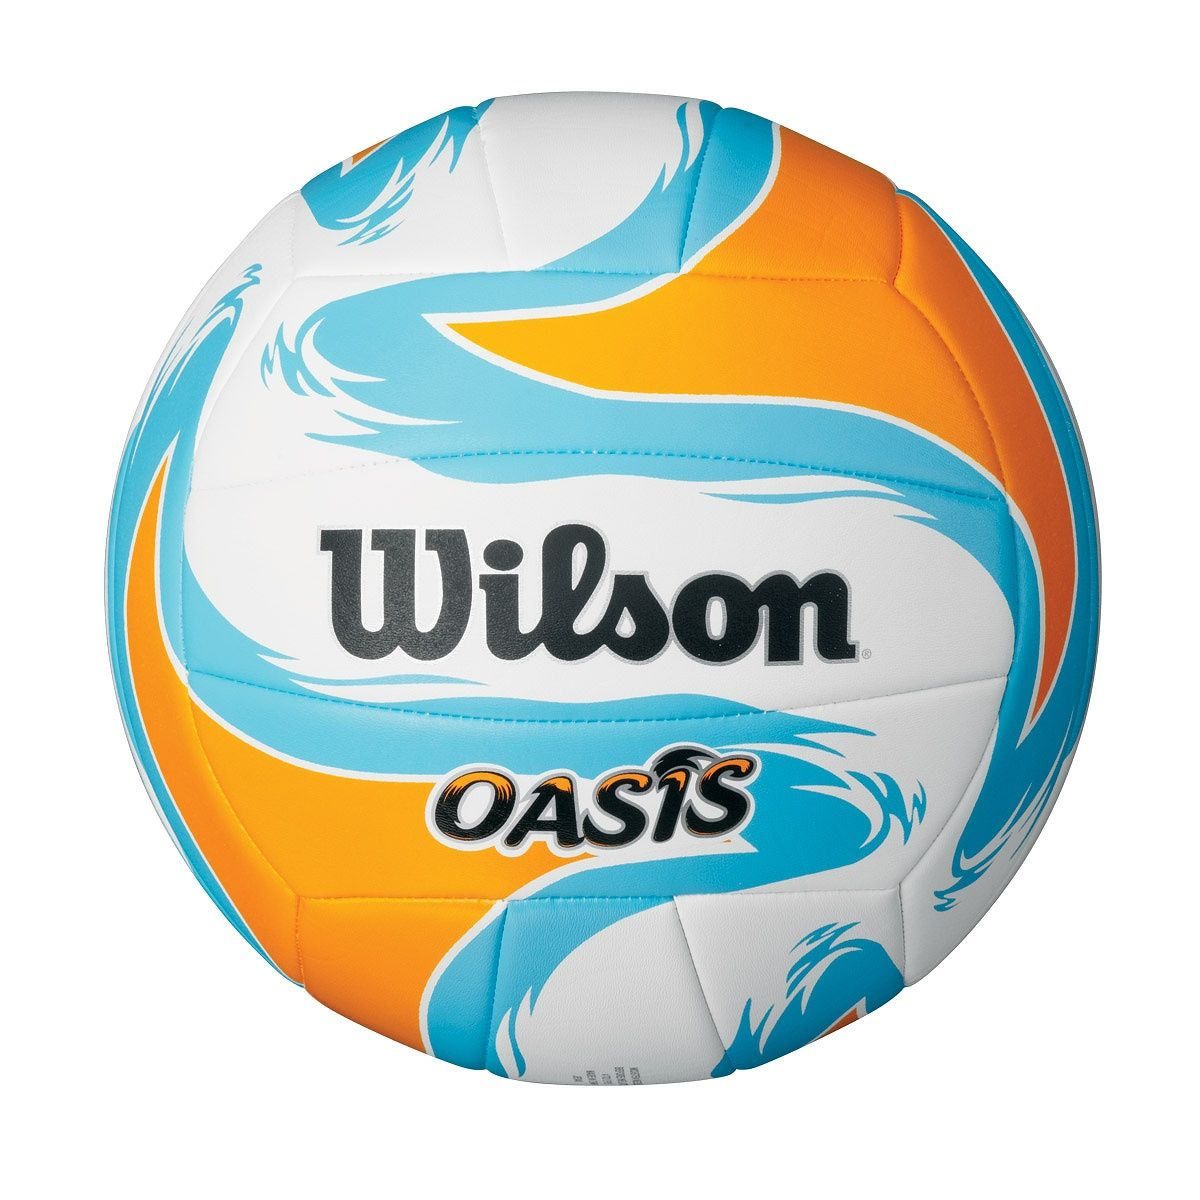 Wilson Volleyball Wilson Evolution Basketball Wilson Avp Volleyball Wilson Volleyball Avp Volleyball Volleyball